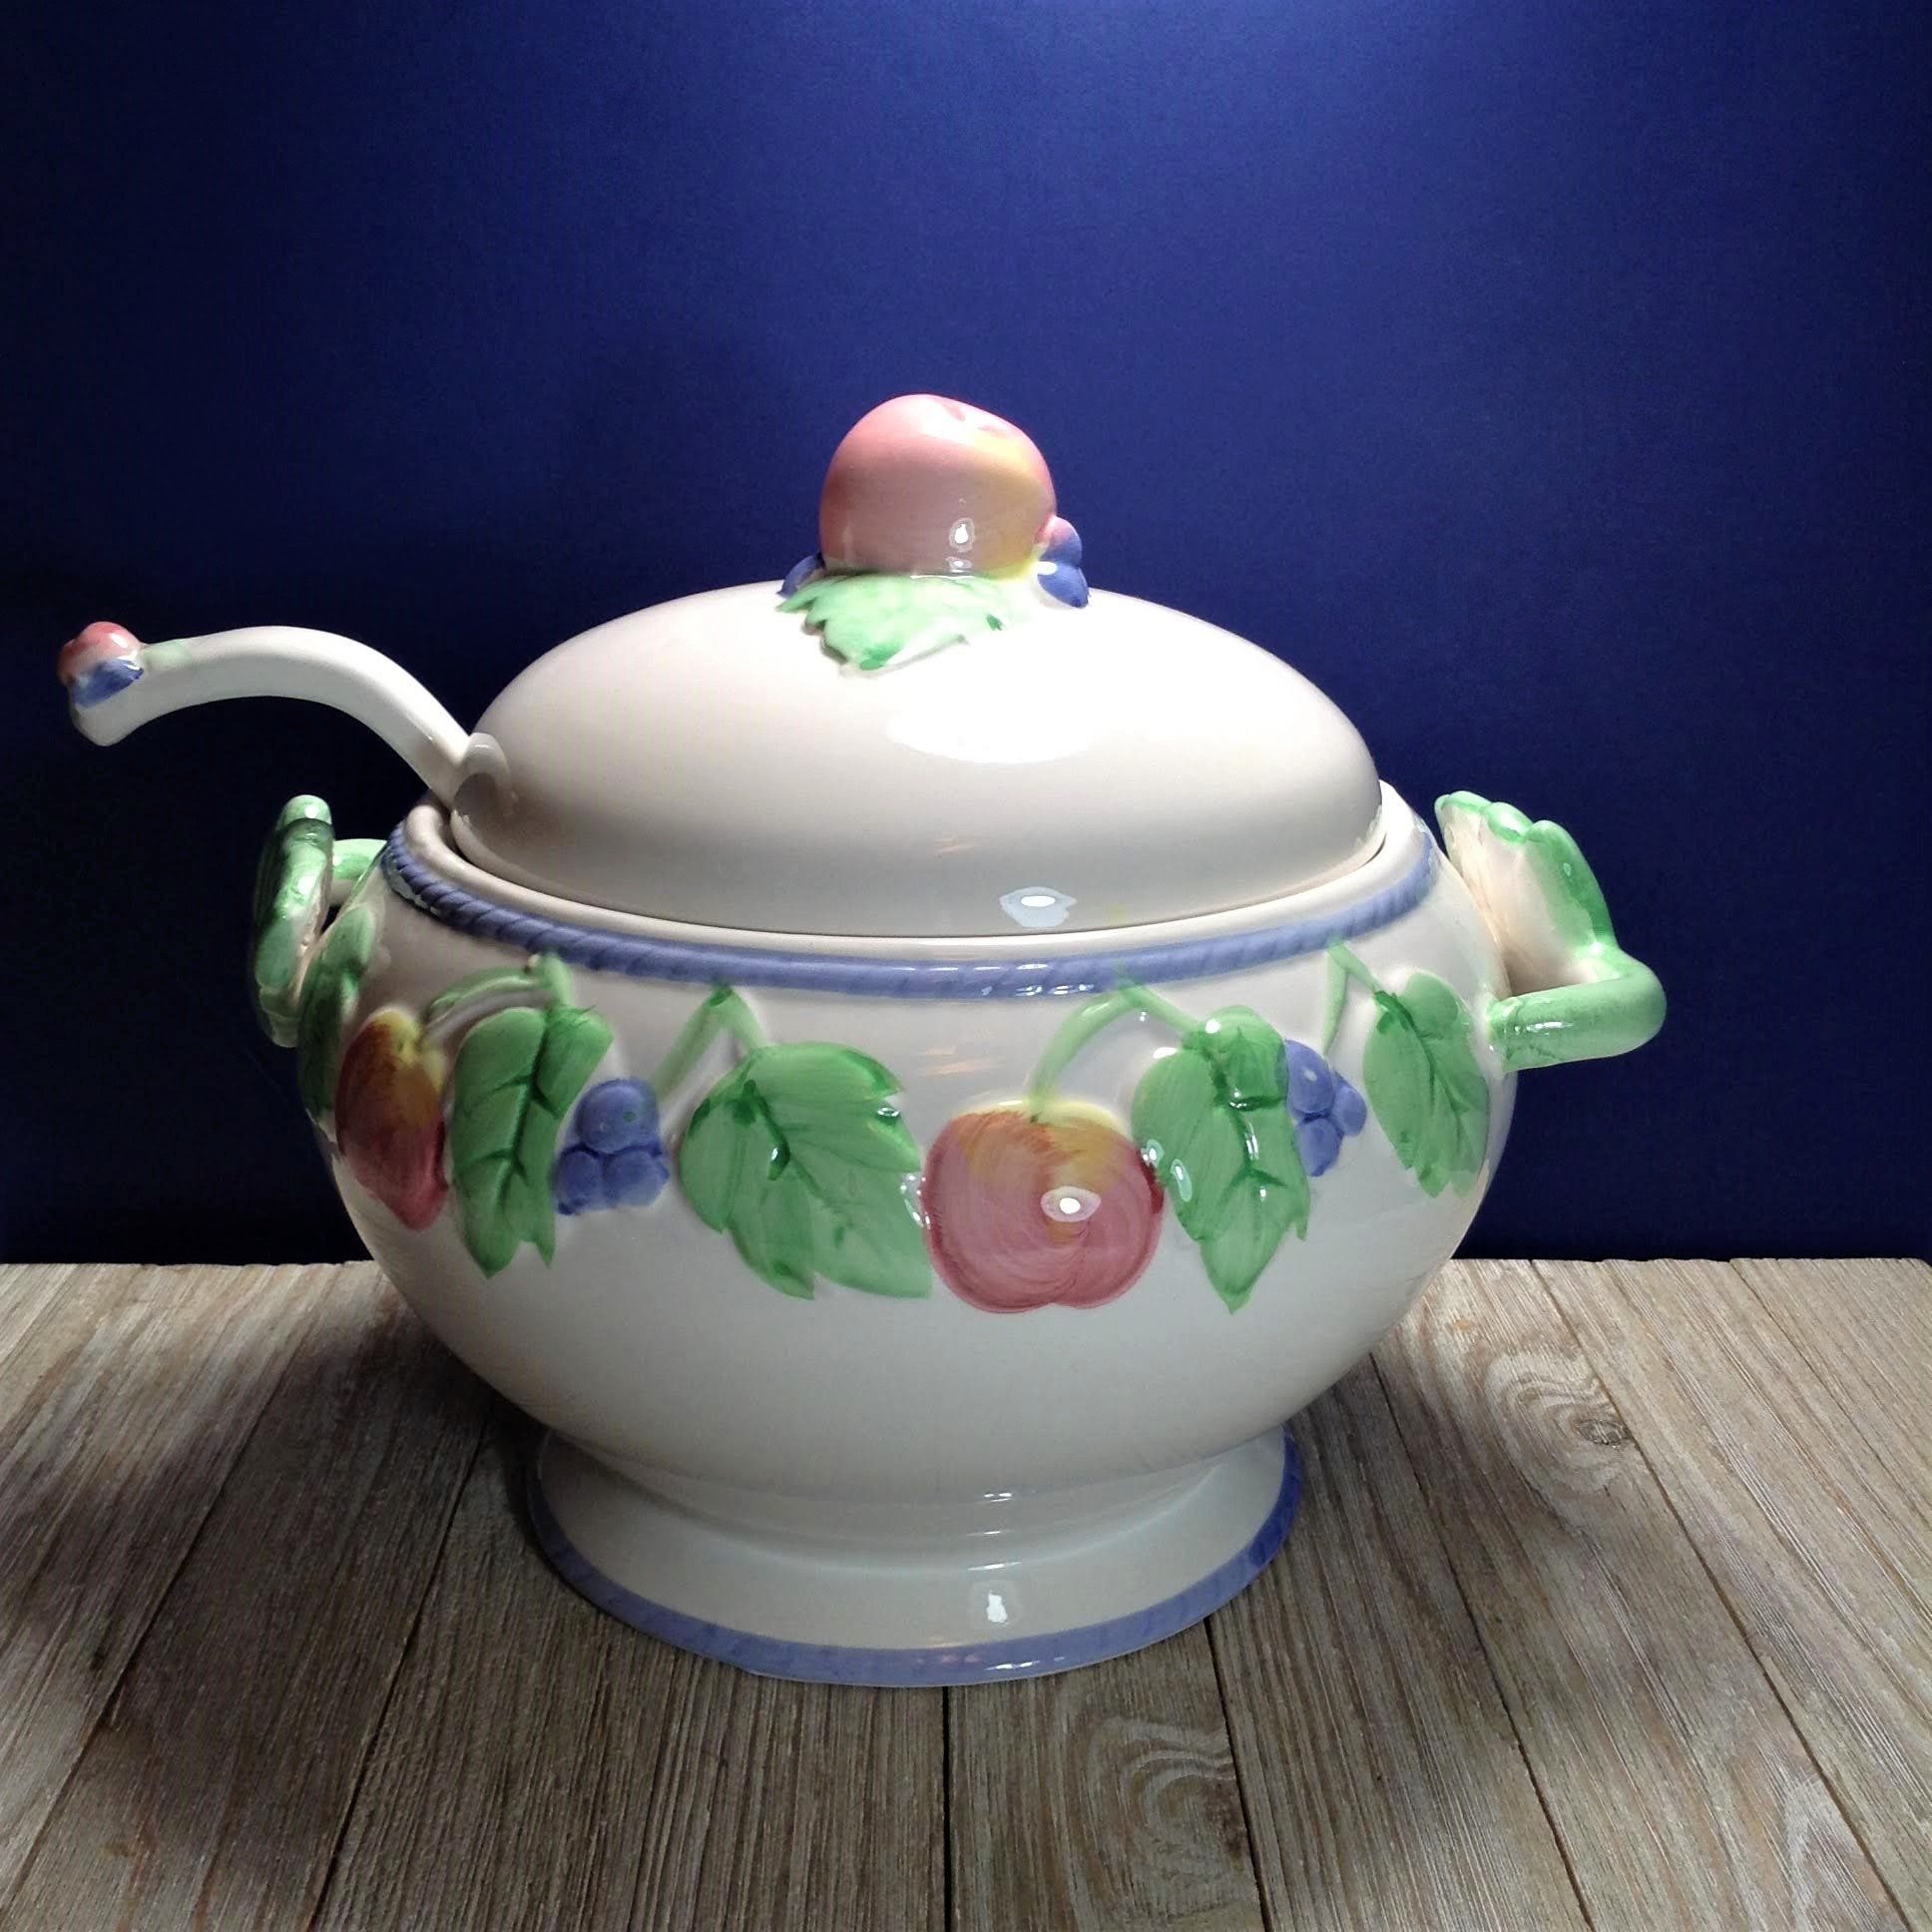 Vintage Soup Tureen Lid W Ladle 3 Pc Ceramic Figural Fruit Soup Tureen Set Cherries Blueberries And Leaves Li Tureen Lids Vintage Glassware Colorful Fruit